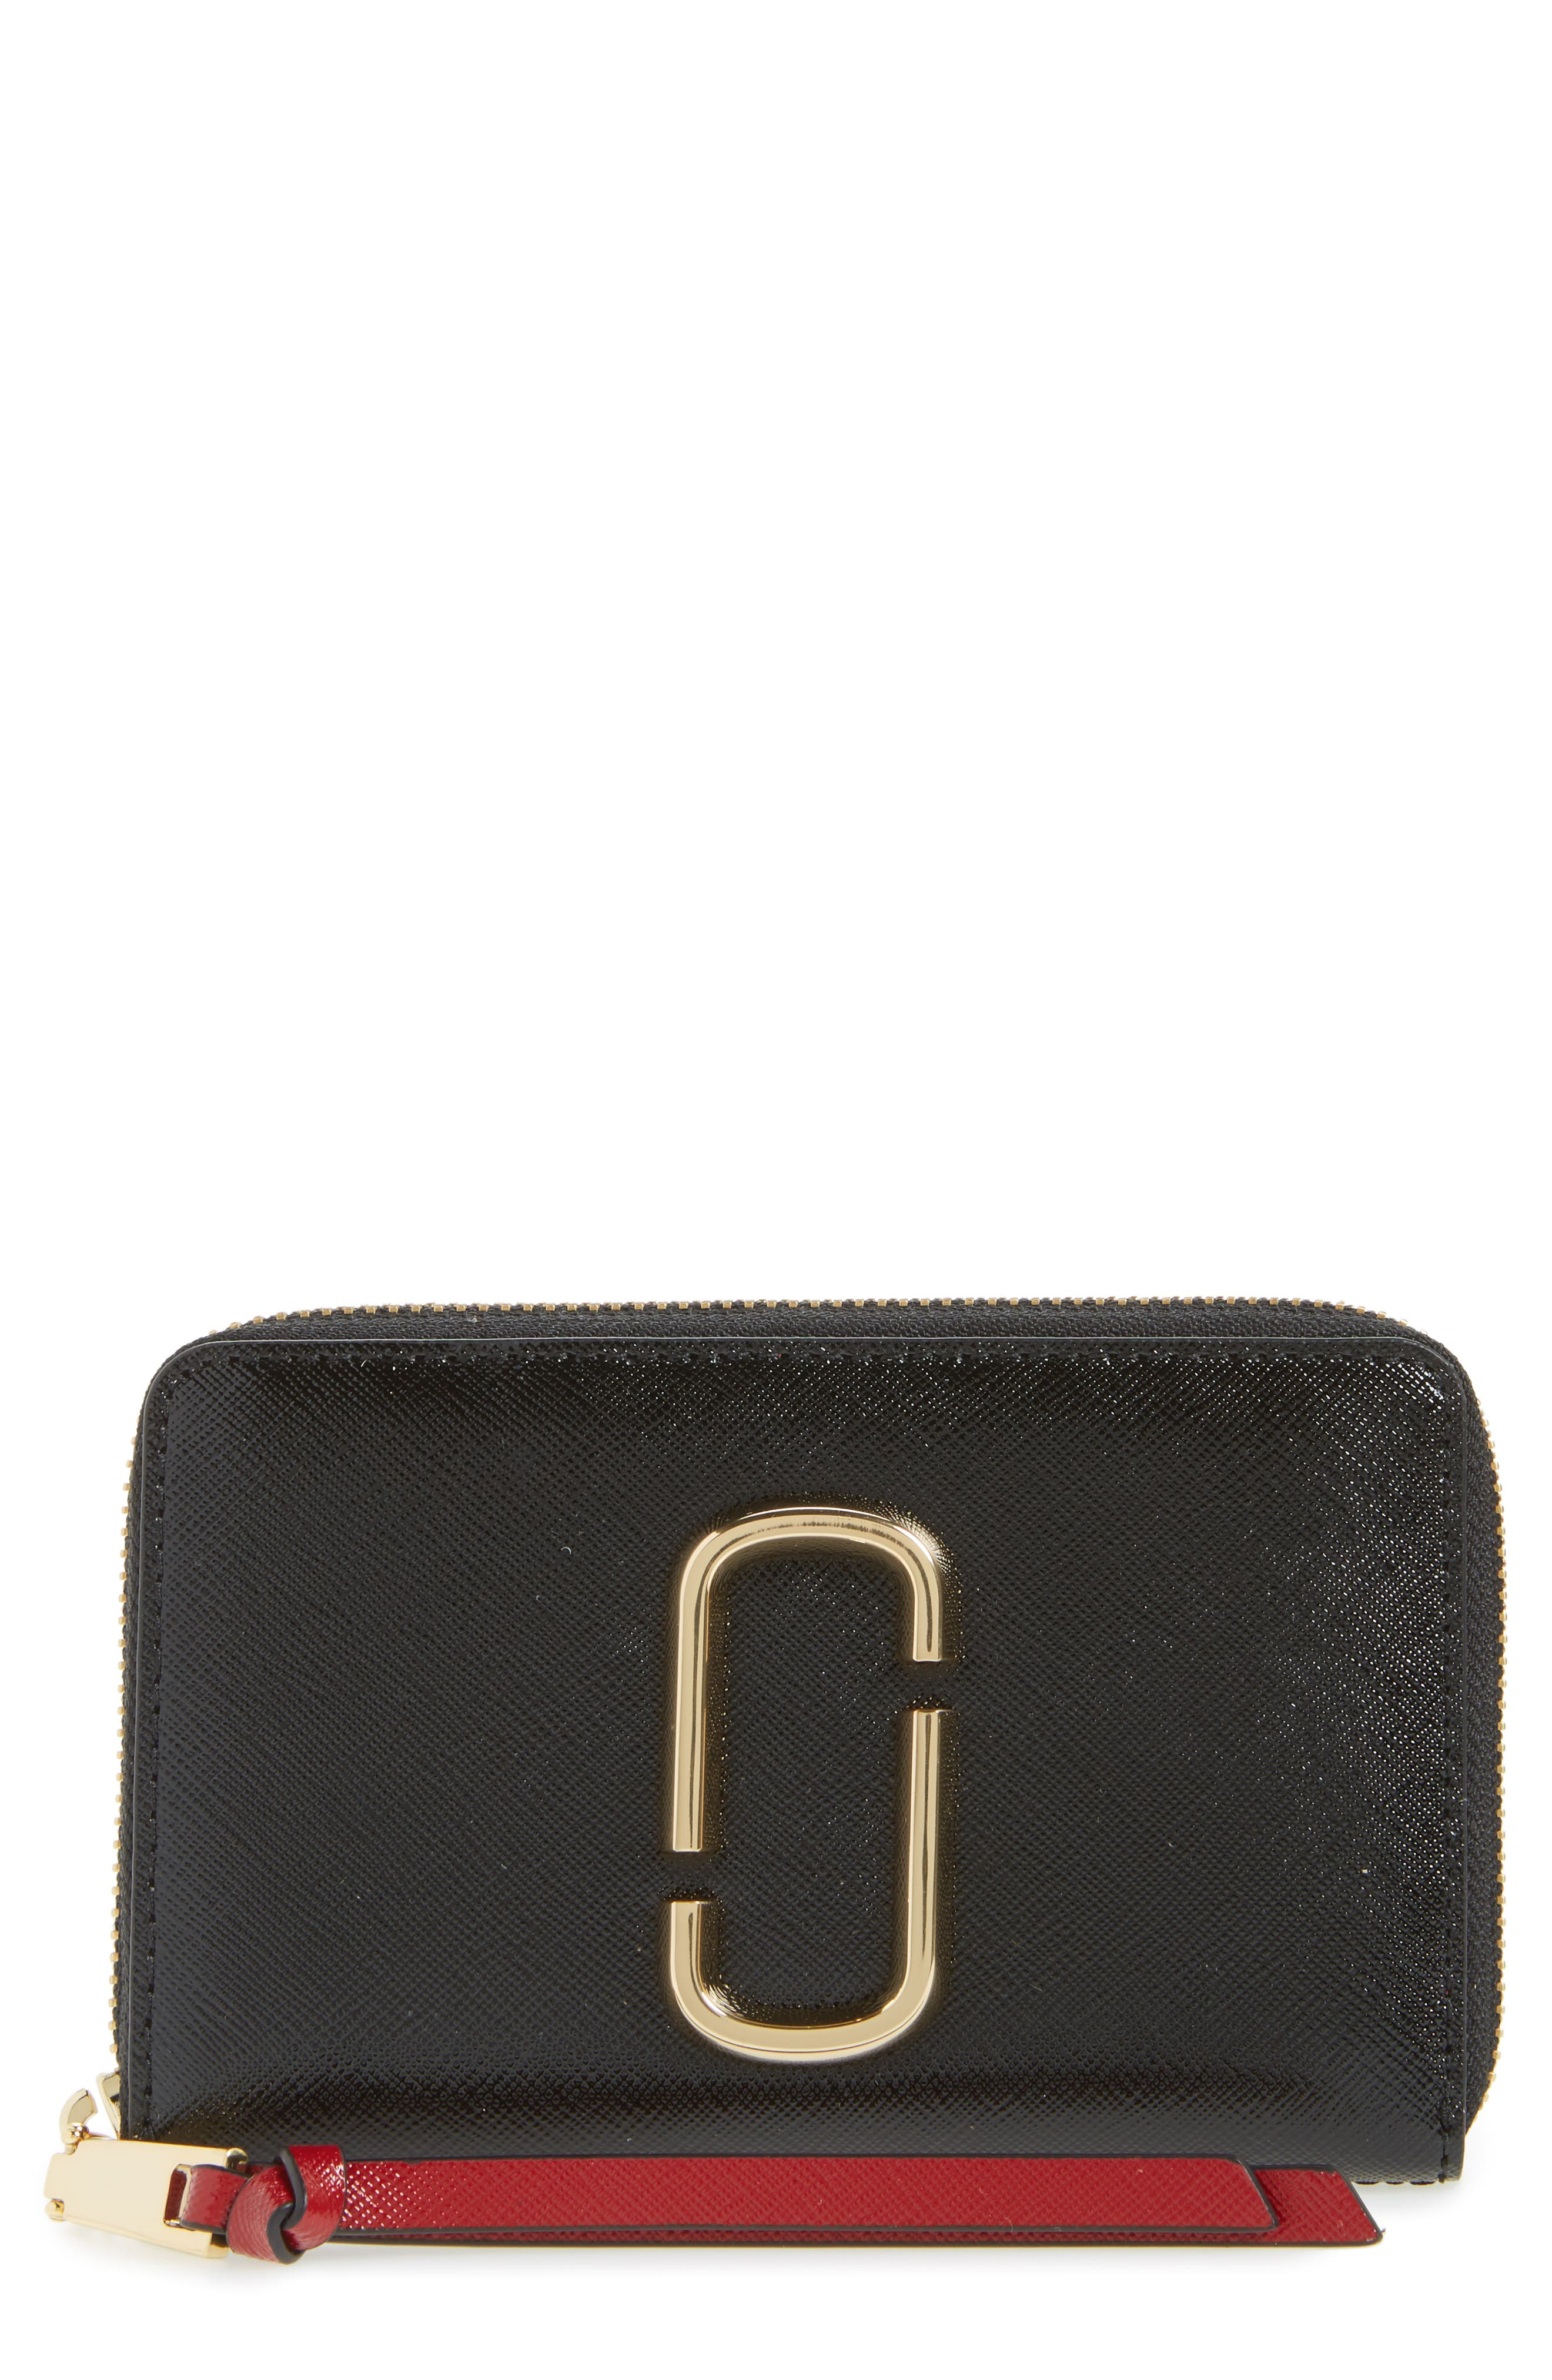 Main Image - MARC JACOBS Small Snapshot Leather Zip-Around Wallet